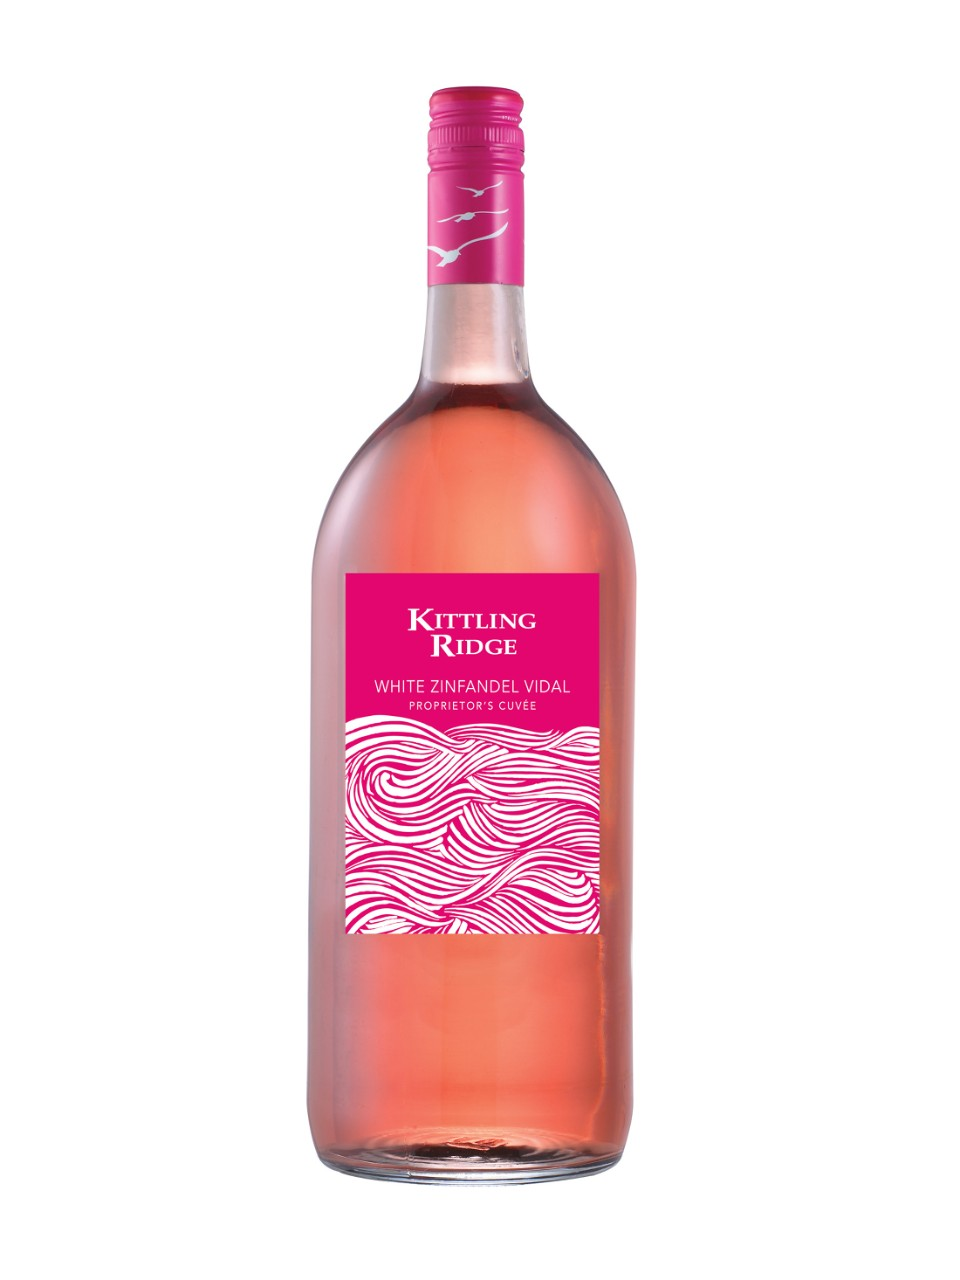 White Zinfandel/Vidal Kittling Ridge